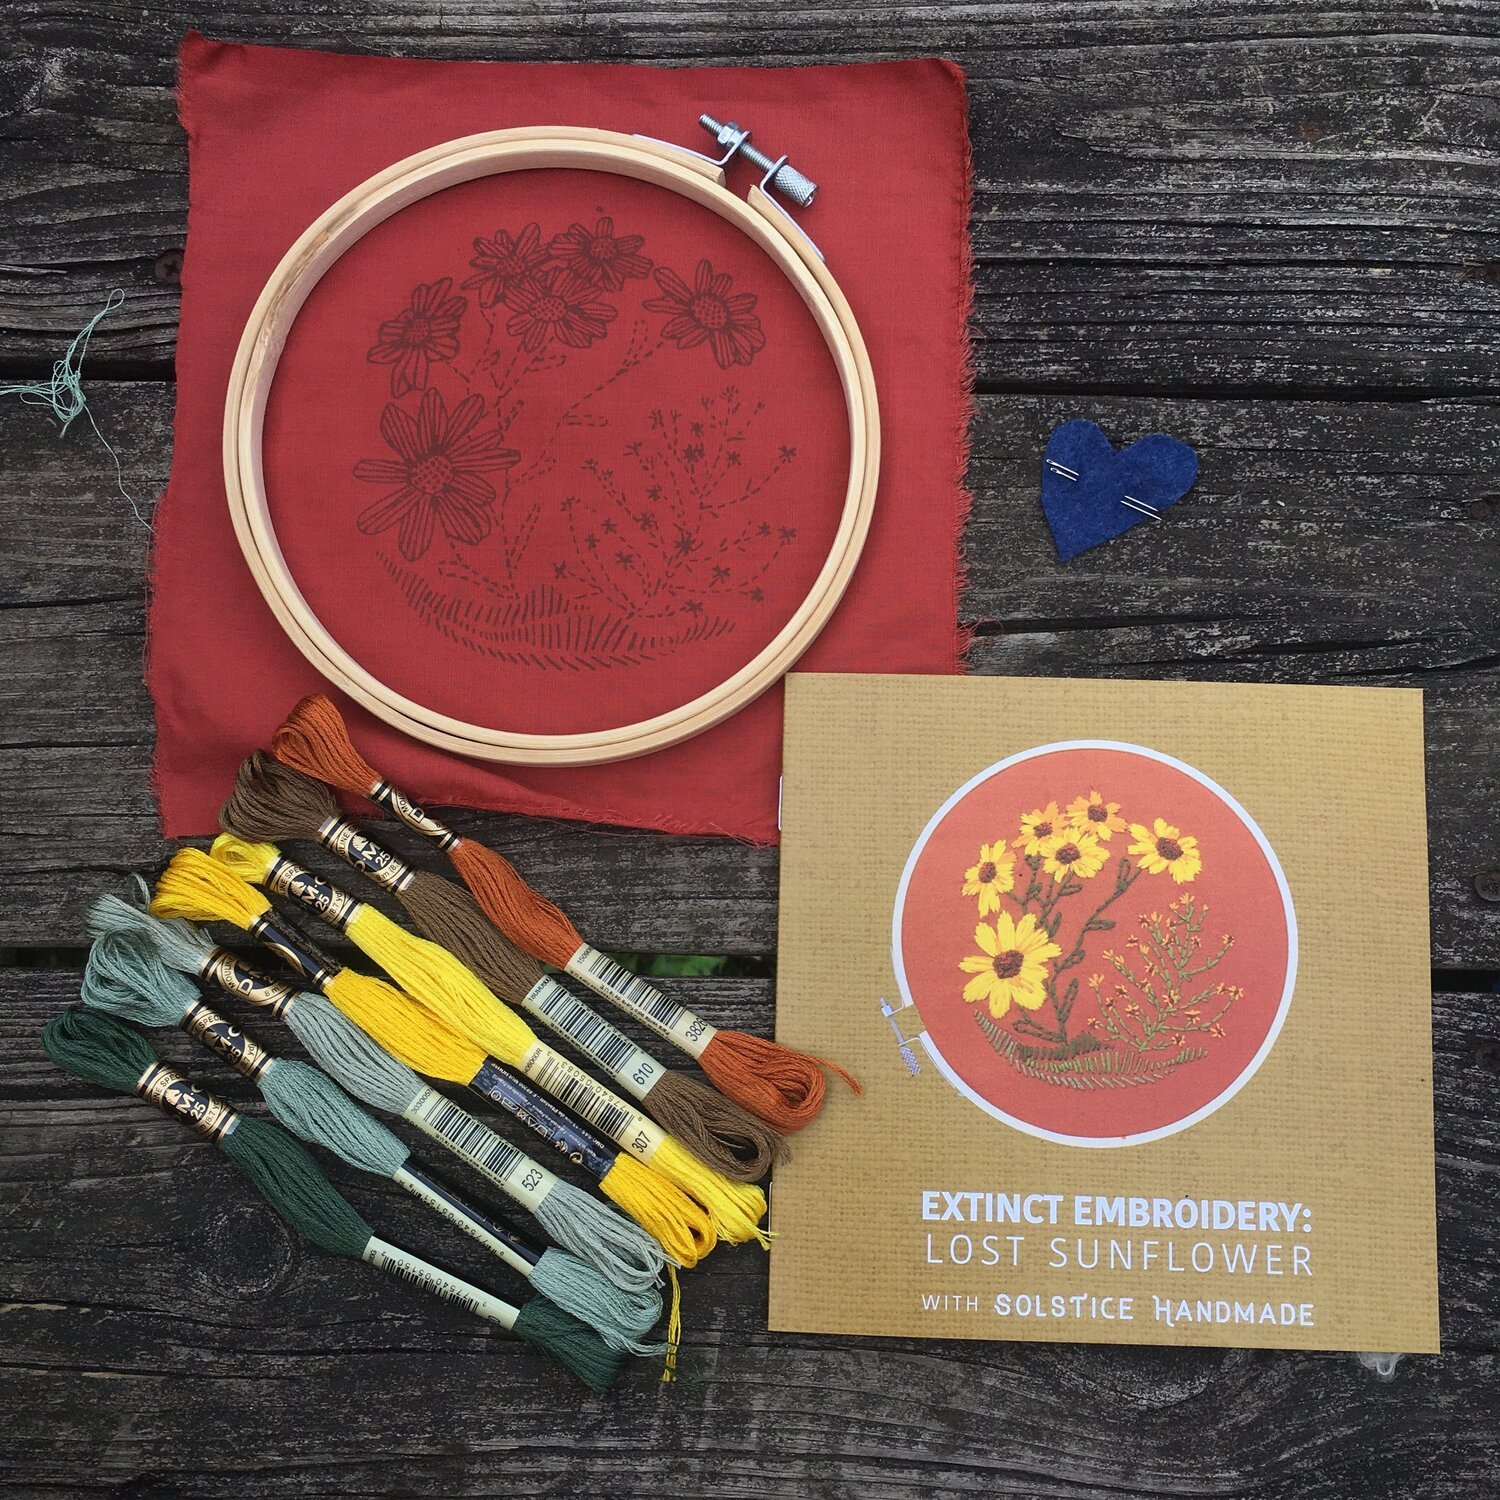 Embroidery Kit - Solstice Handmade - The Lost Sunflower